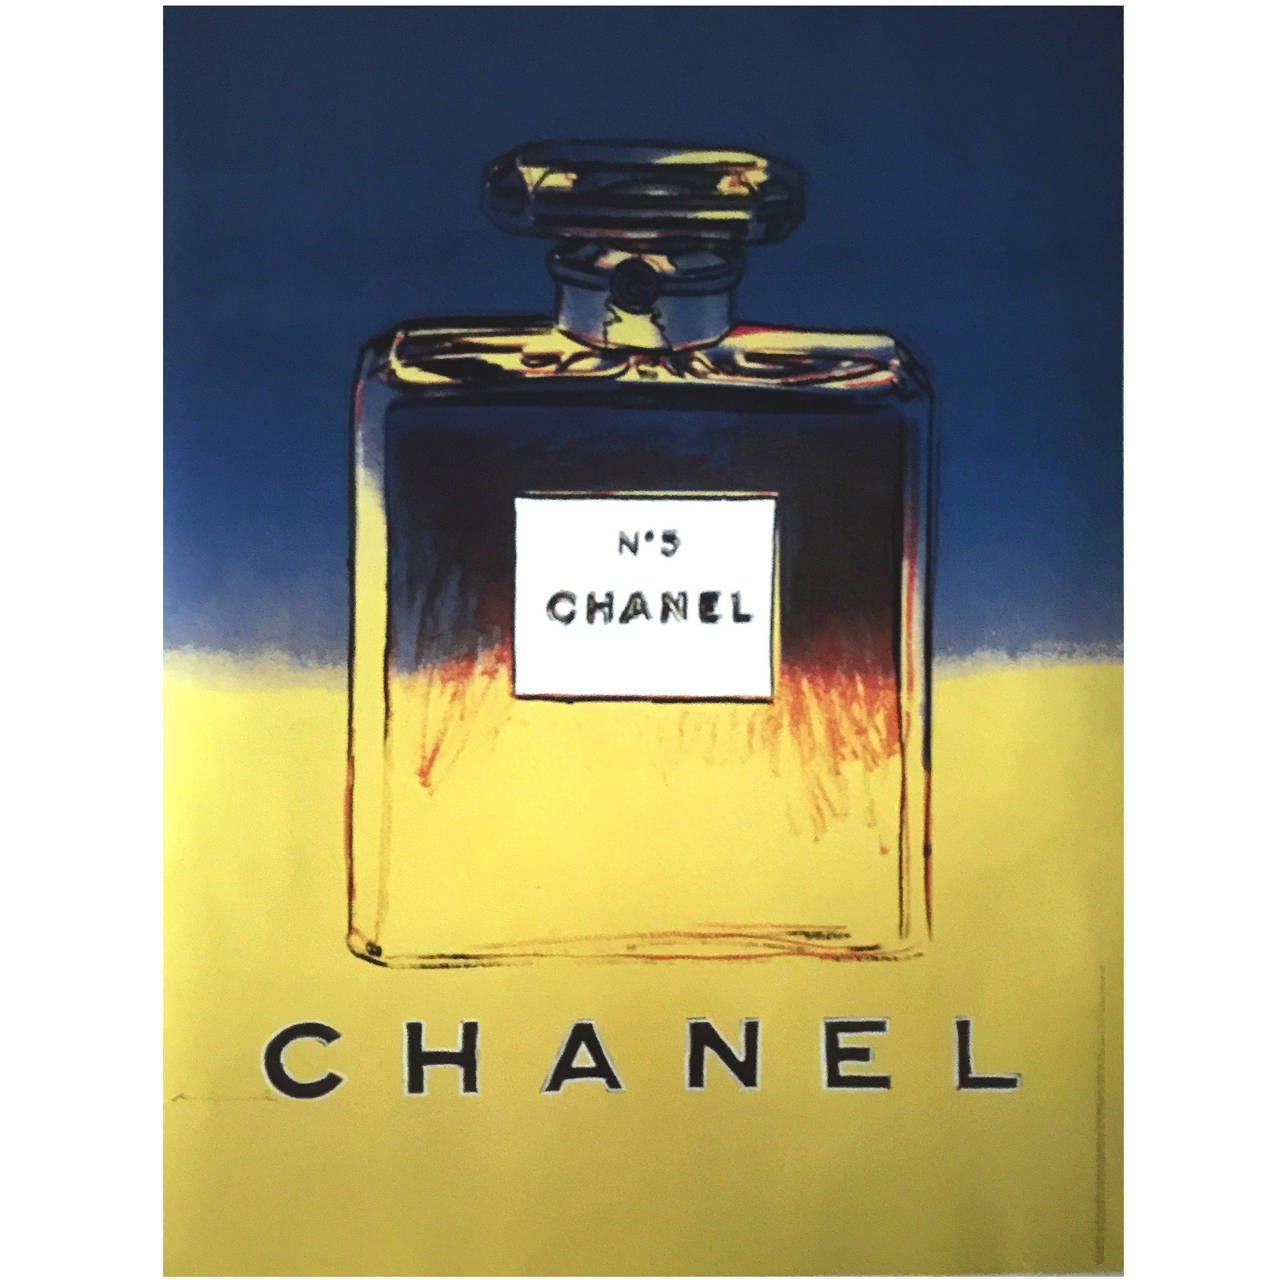 andy warhol for chanel no 5 large size french poster in blue and yellow for sale at 1stdibs. Black Bedroom Furniture Sets. Home Design Ideas